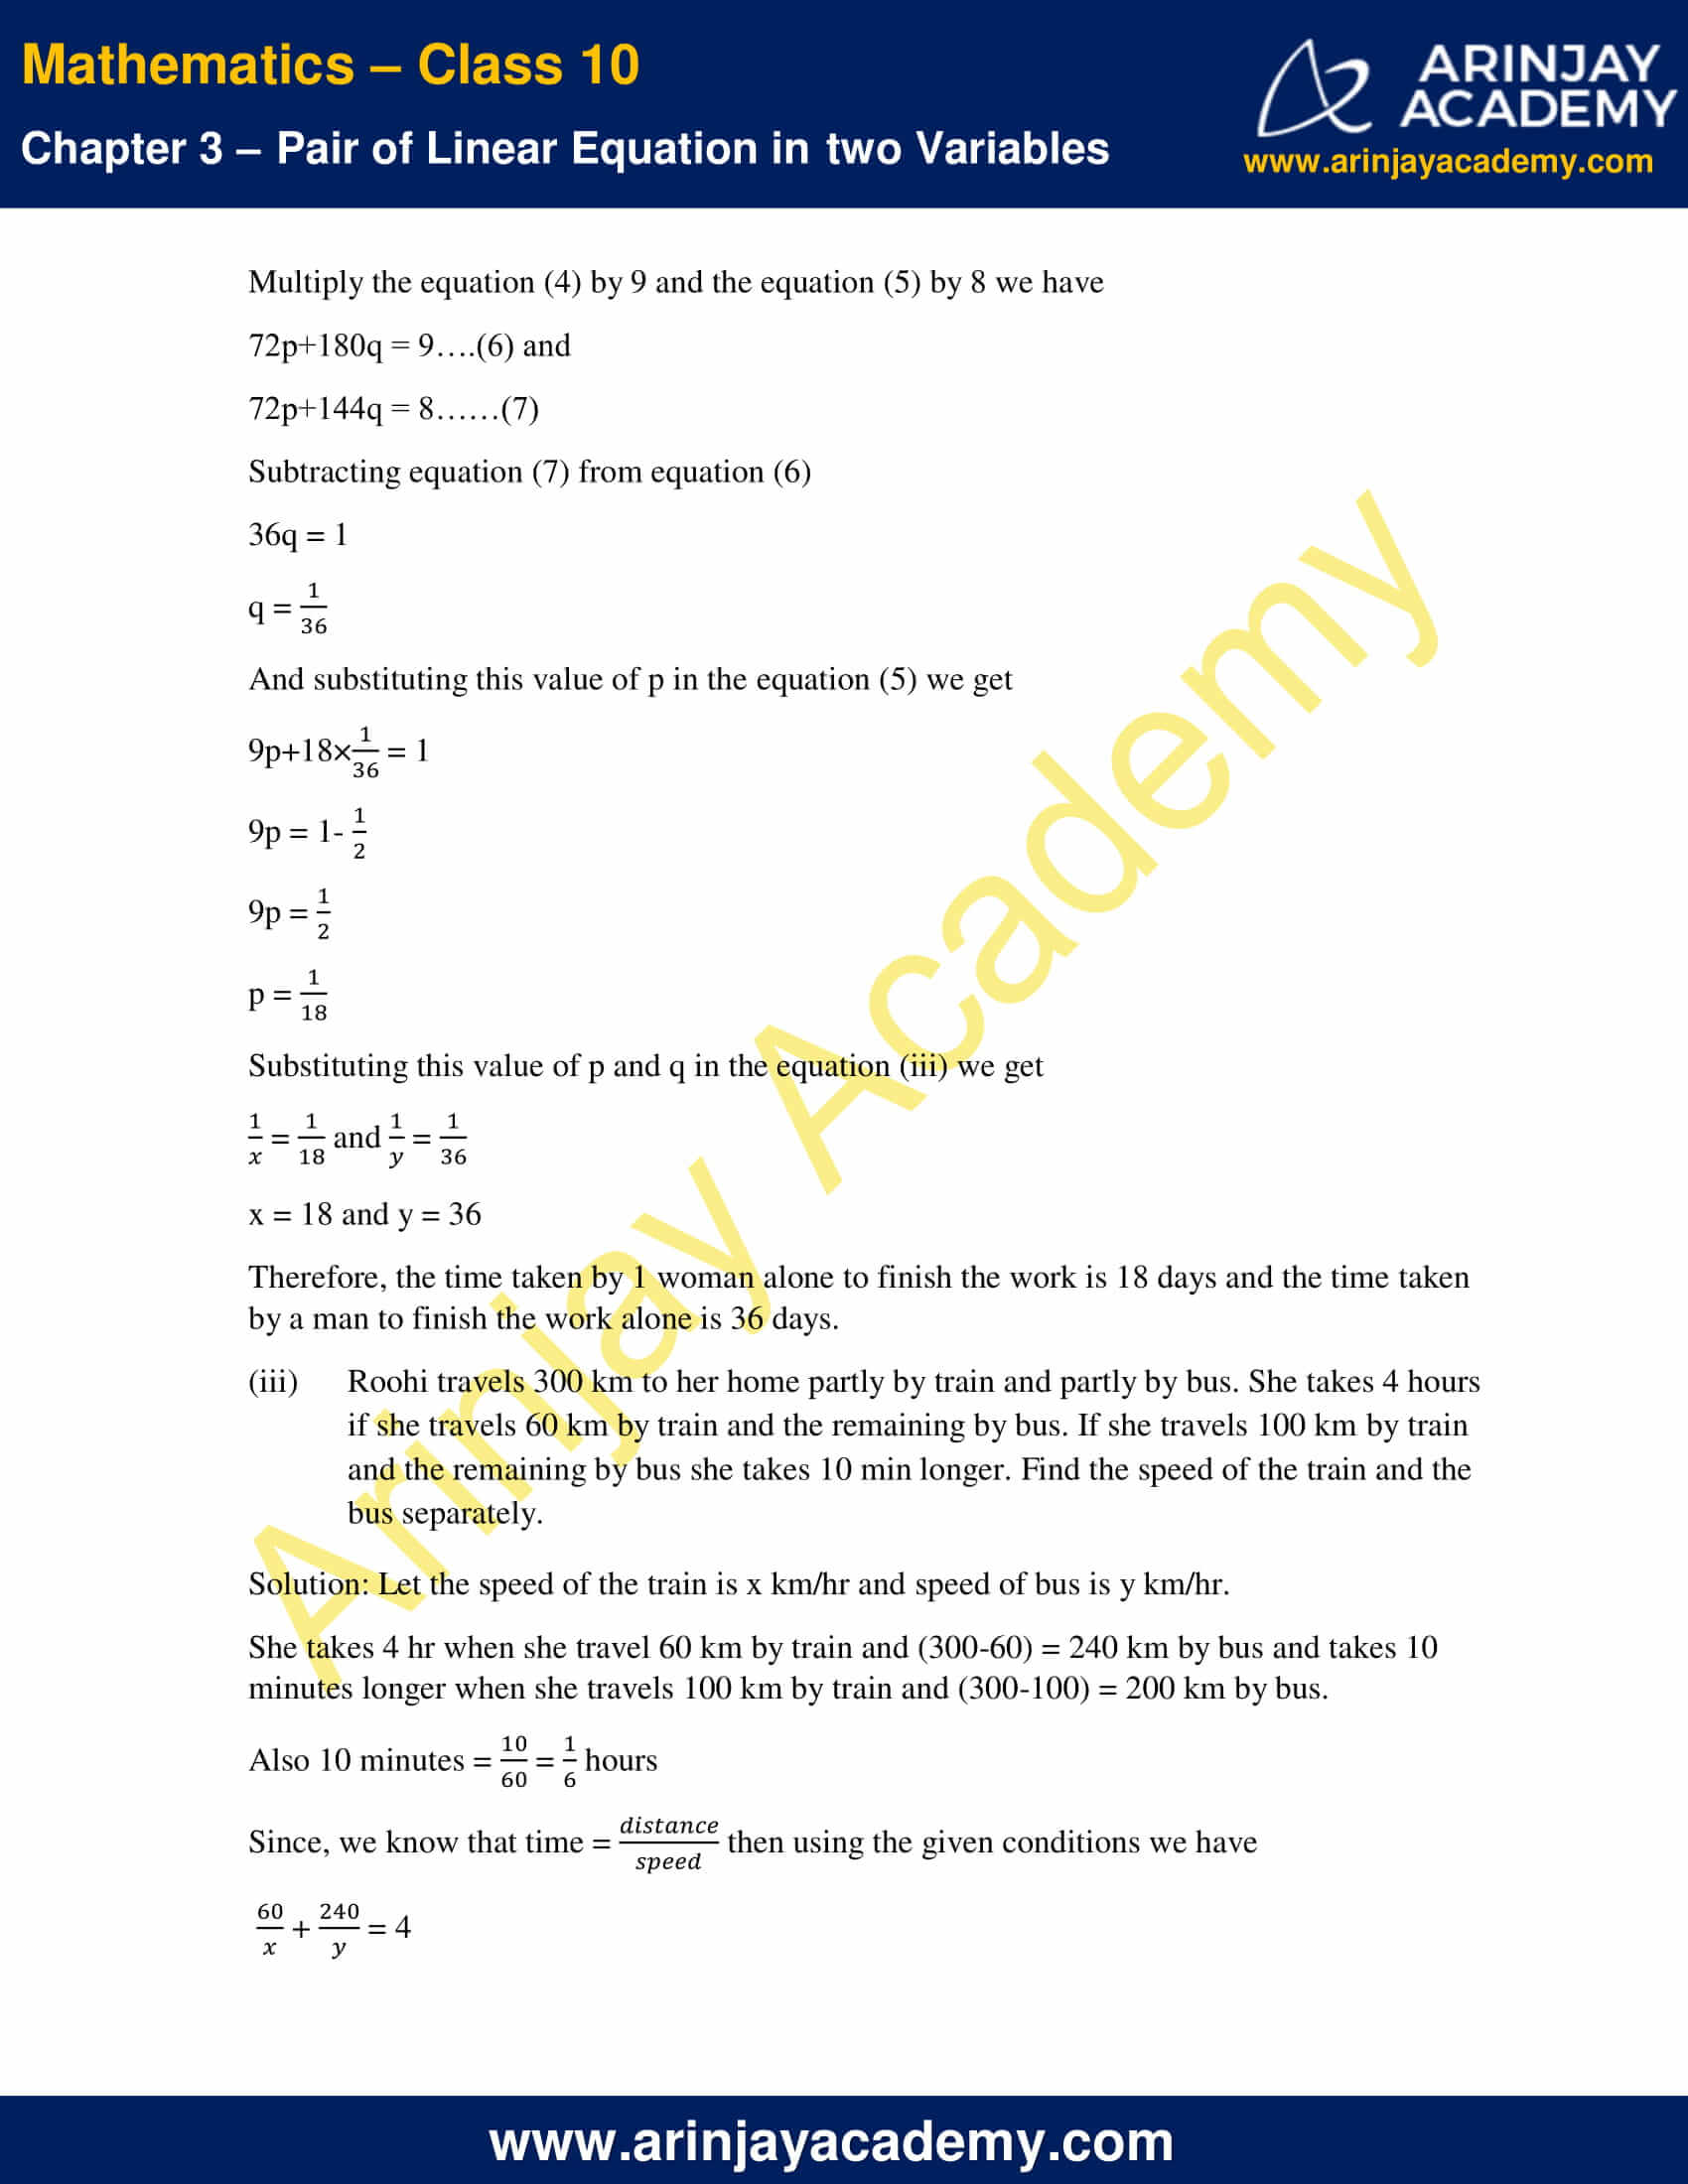 NCERT Solutions For Class 10 Maths Chapter 3 Exercise 3.6 image 10